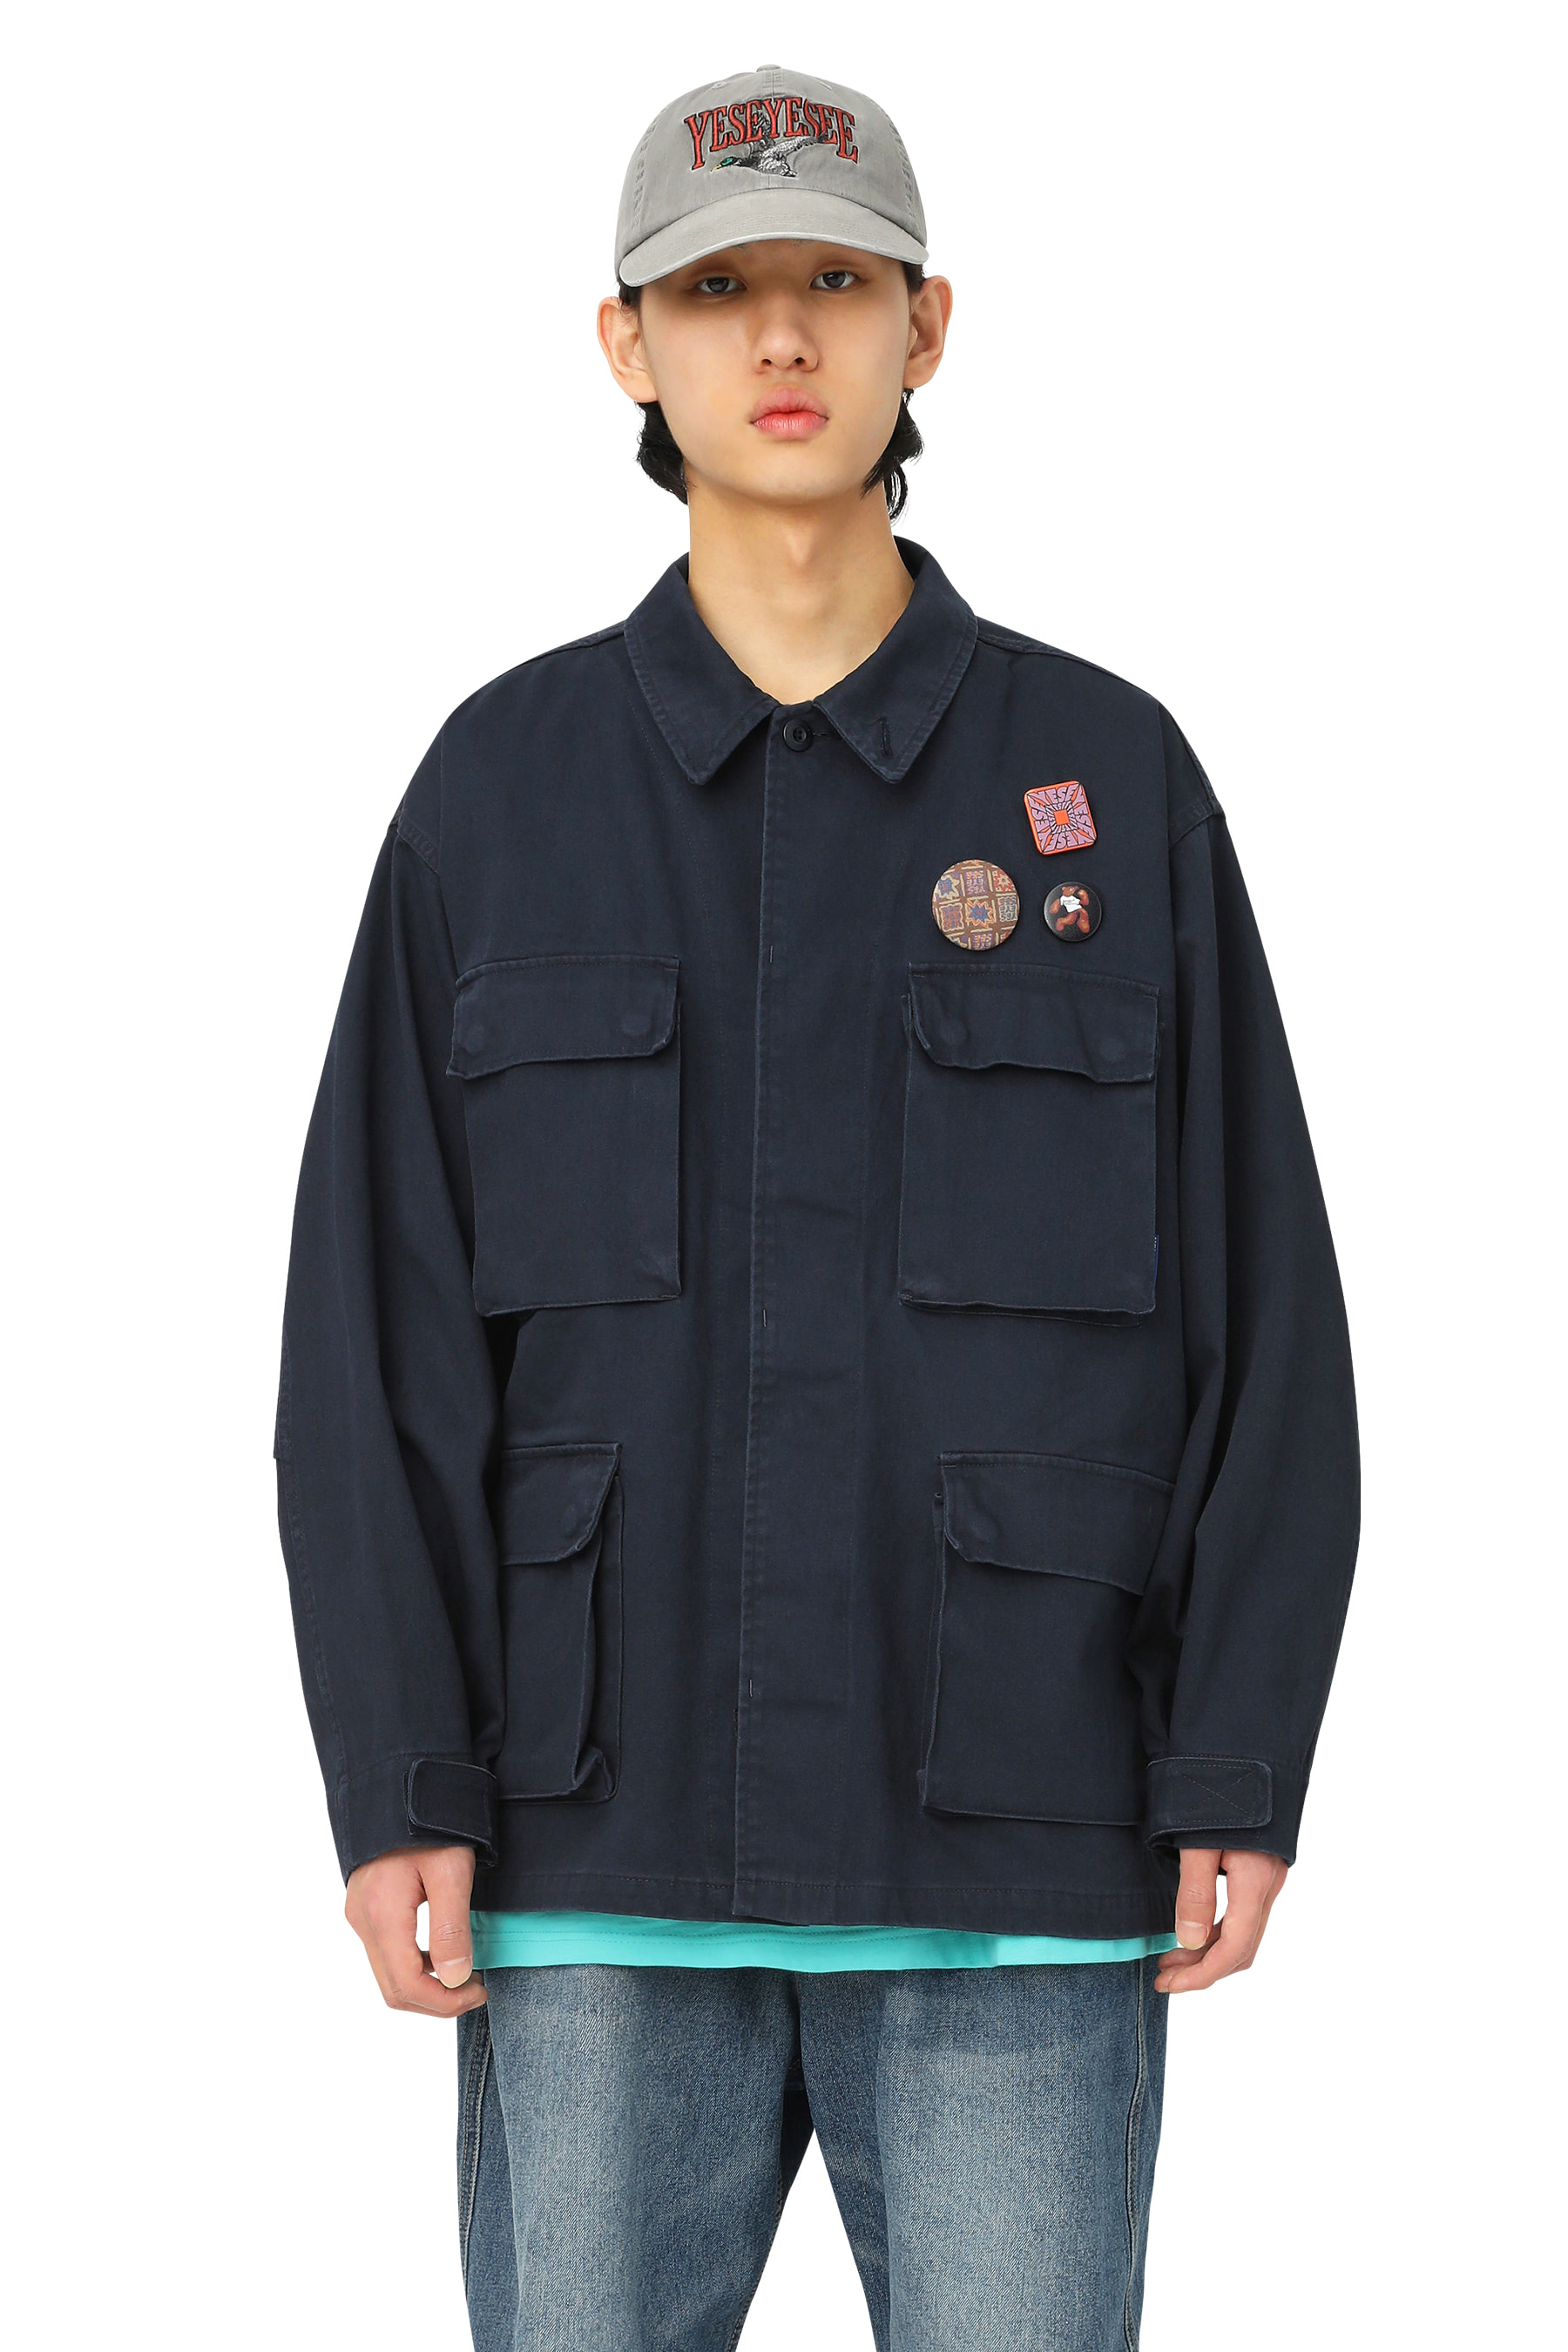 Y.E.S BDU Jacket Navy